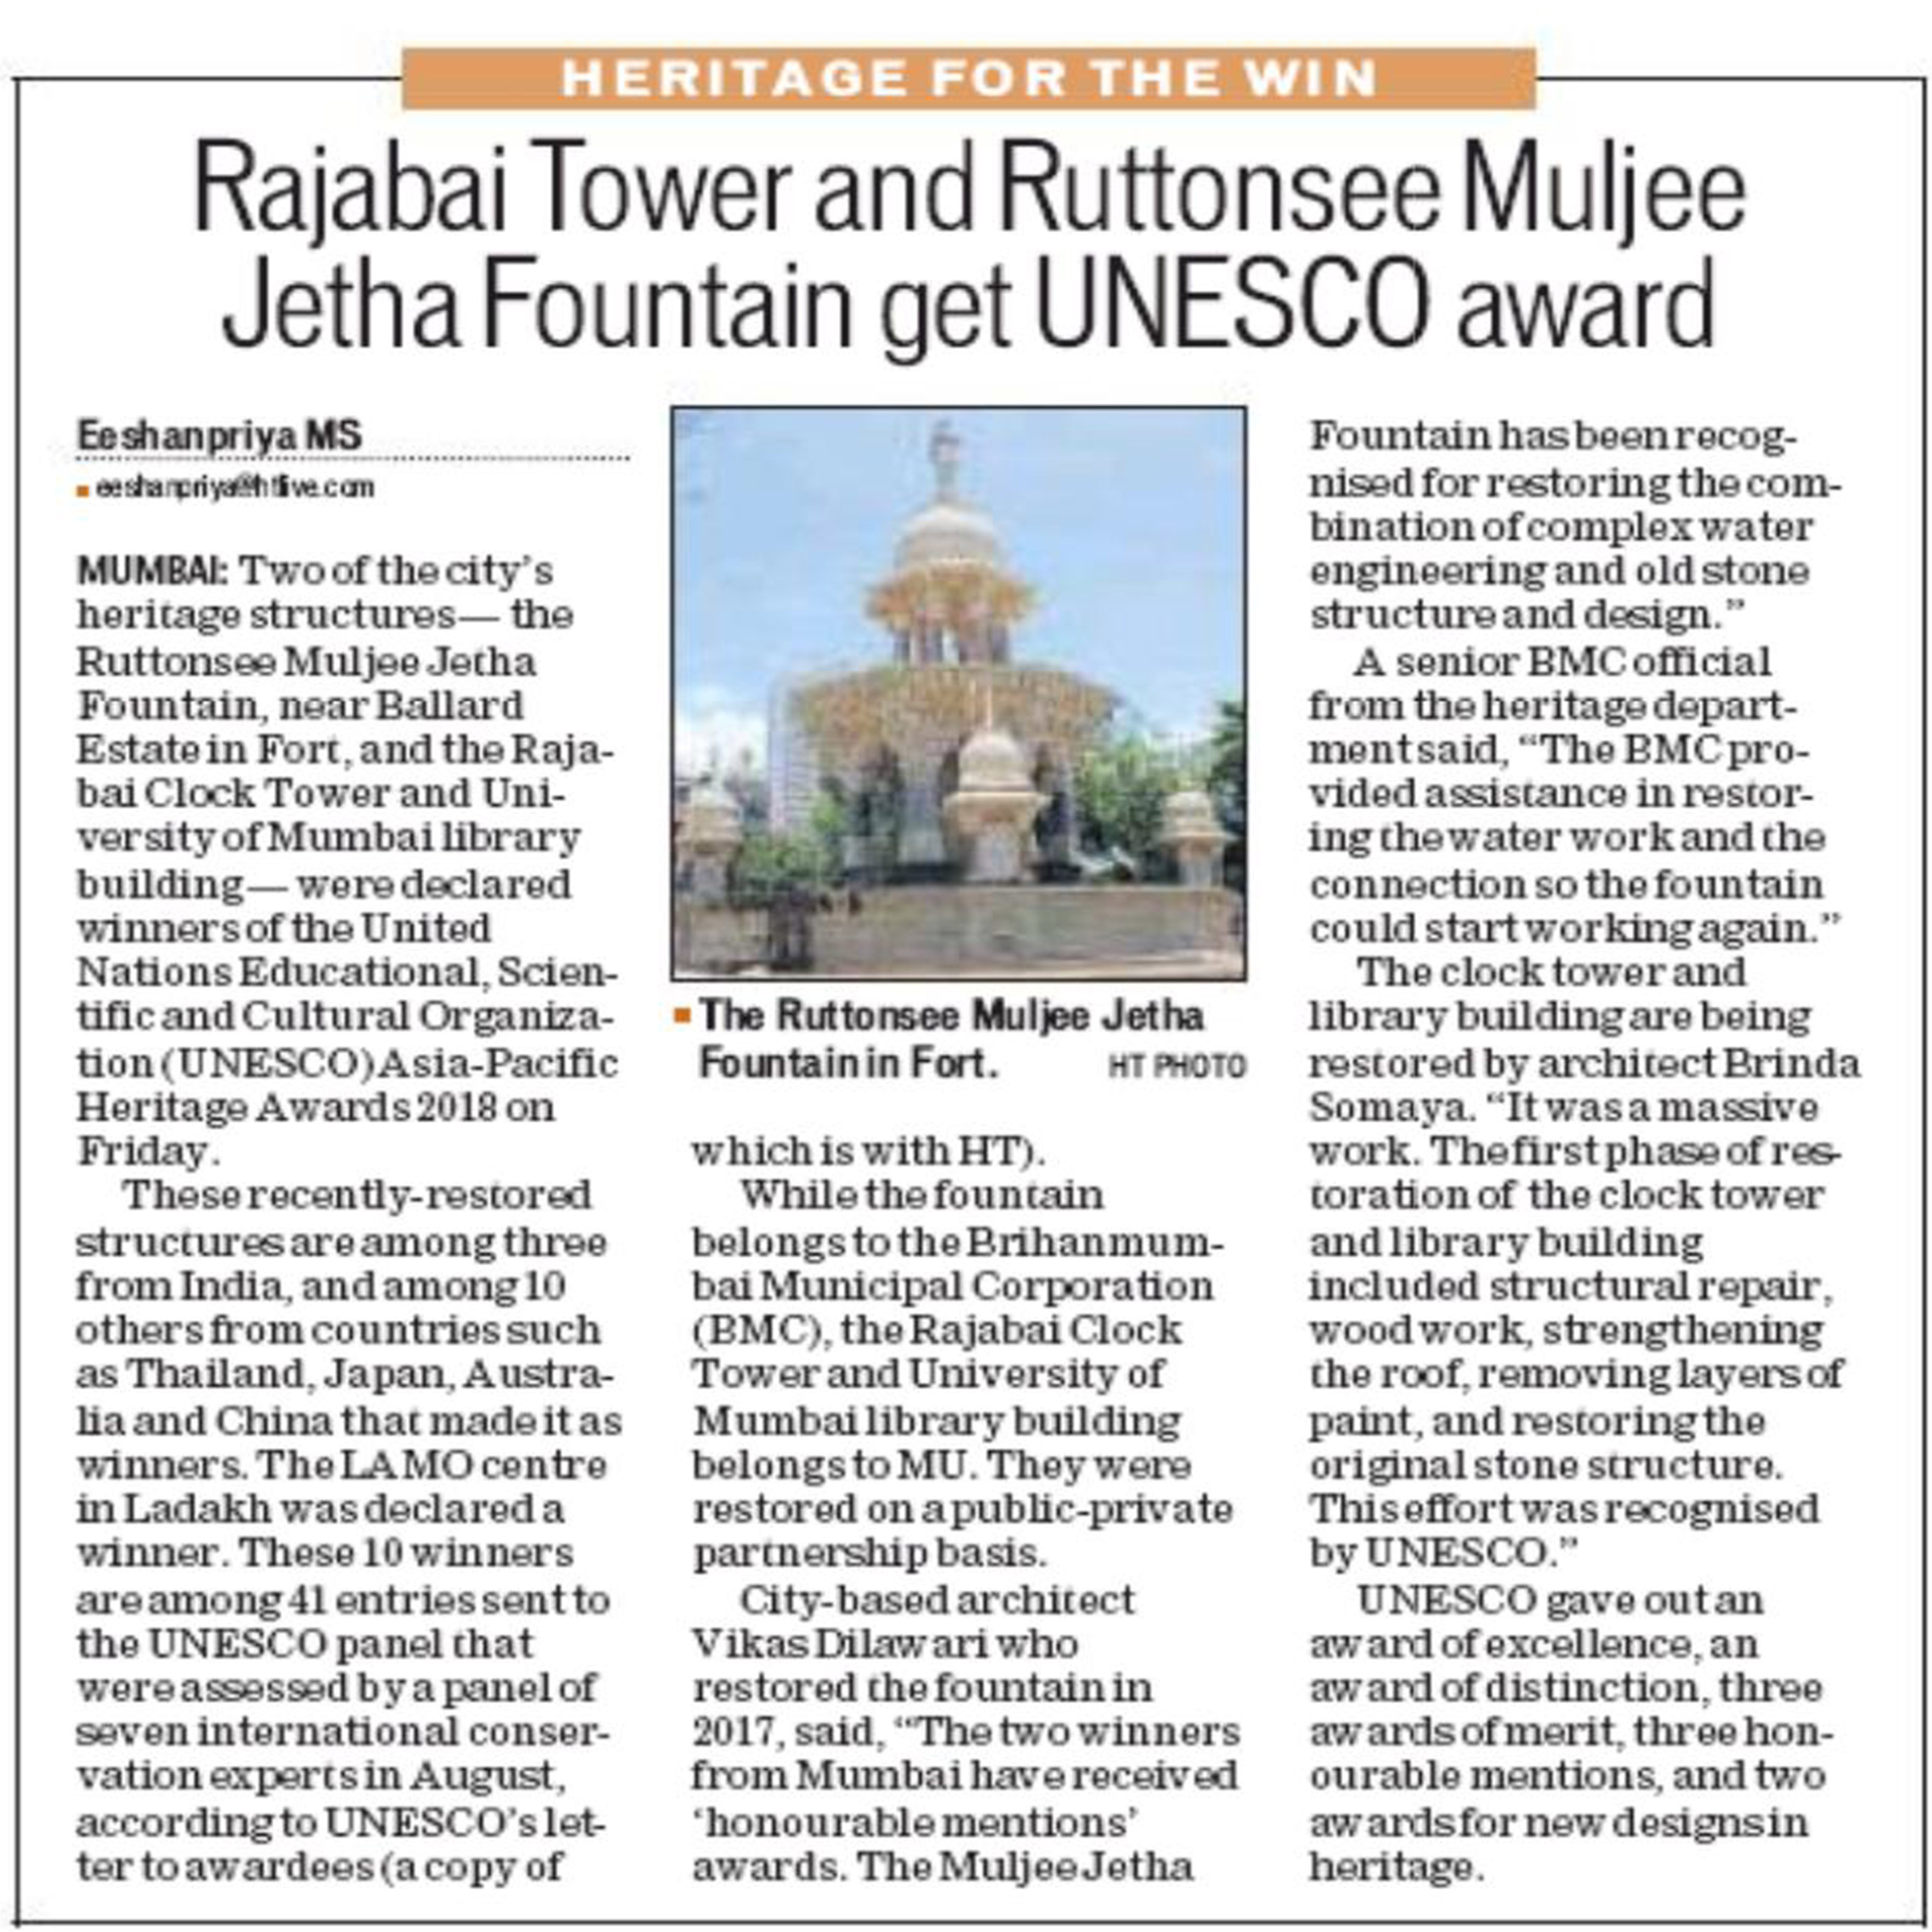 Rajabai Tower and Ruttonsee Muljee Jetha Fountain get UNESCO Award